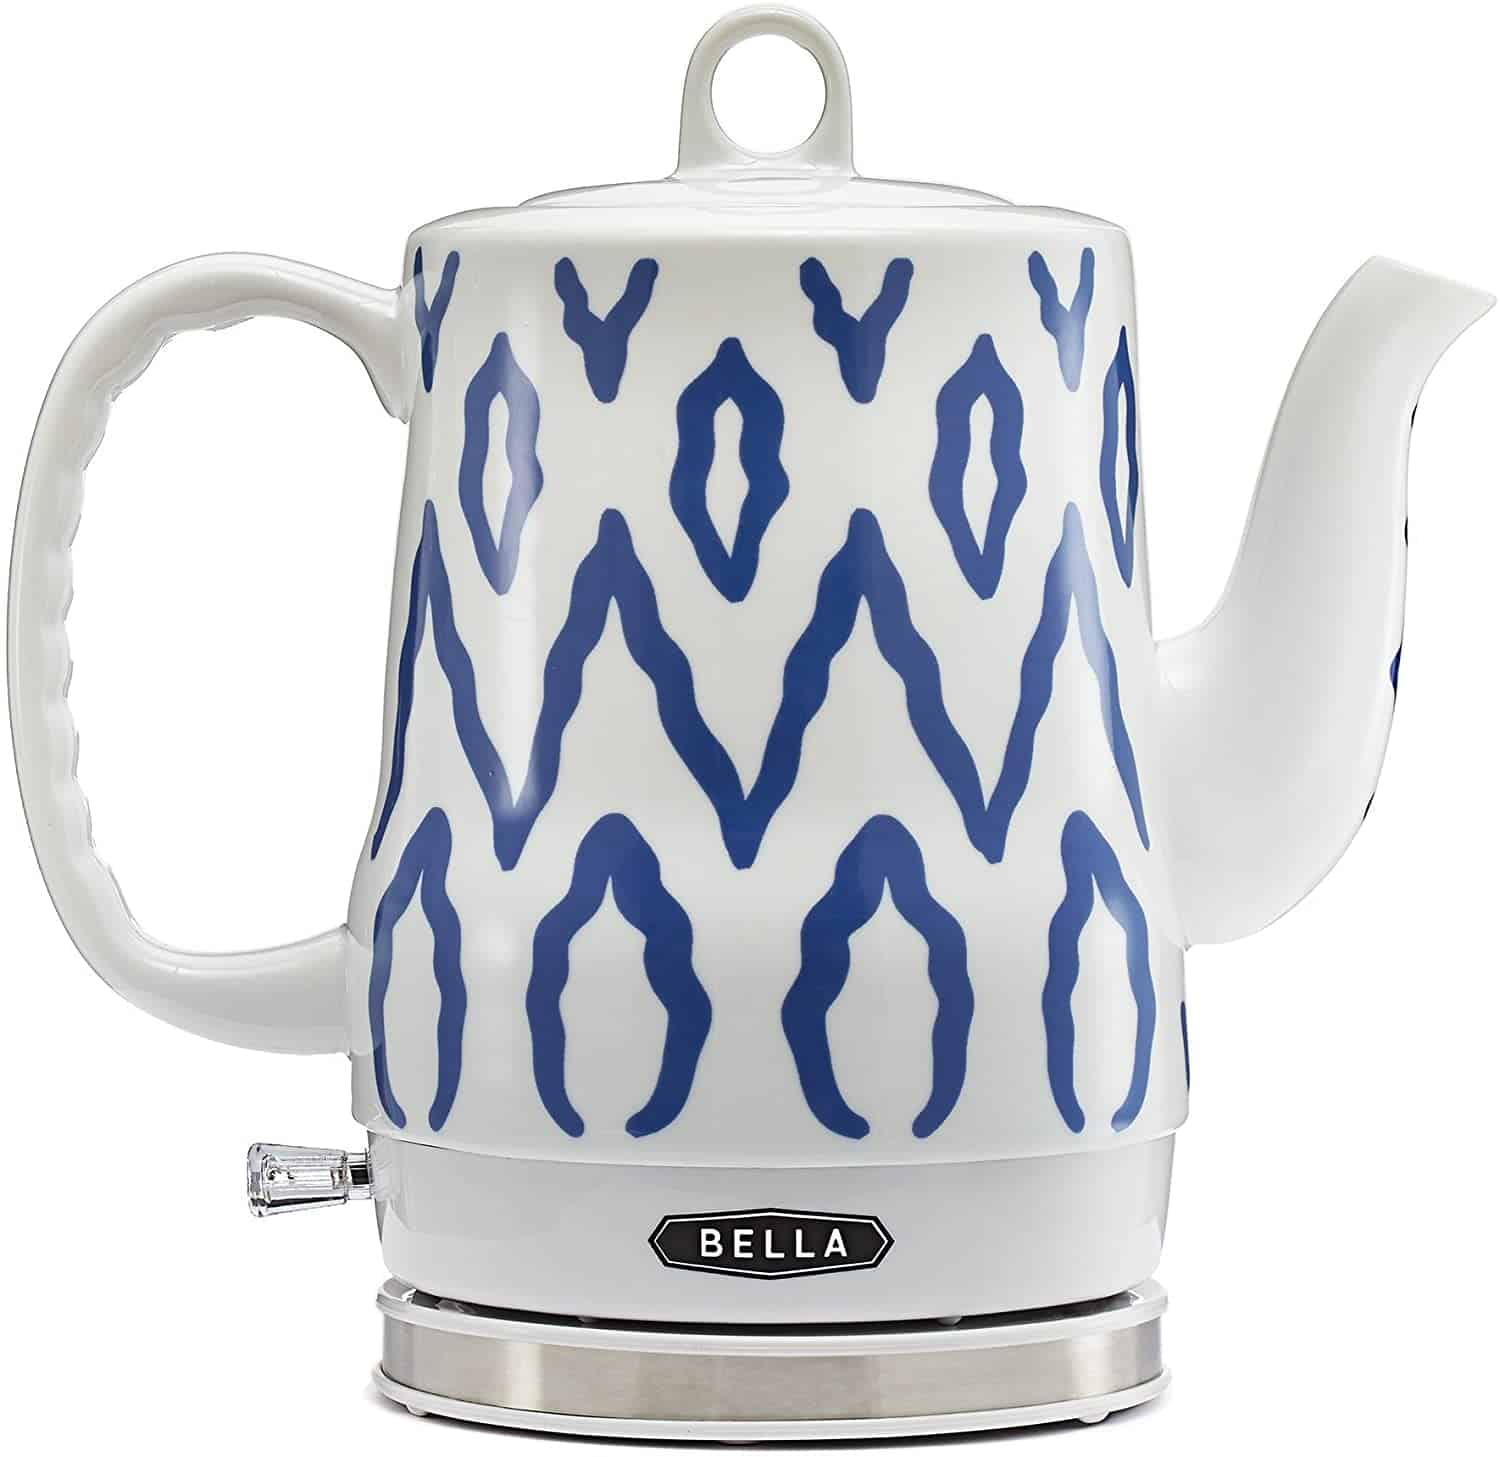 BELLA Electric Kettle in Ceramic